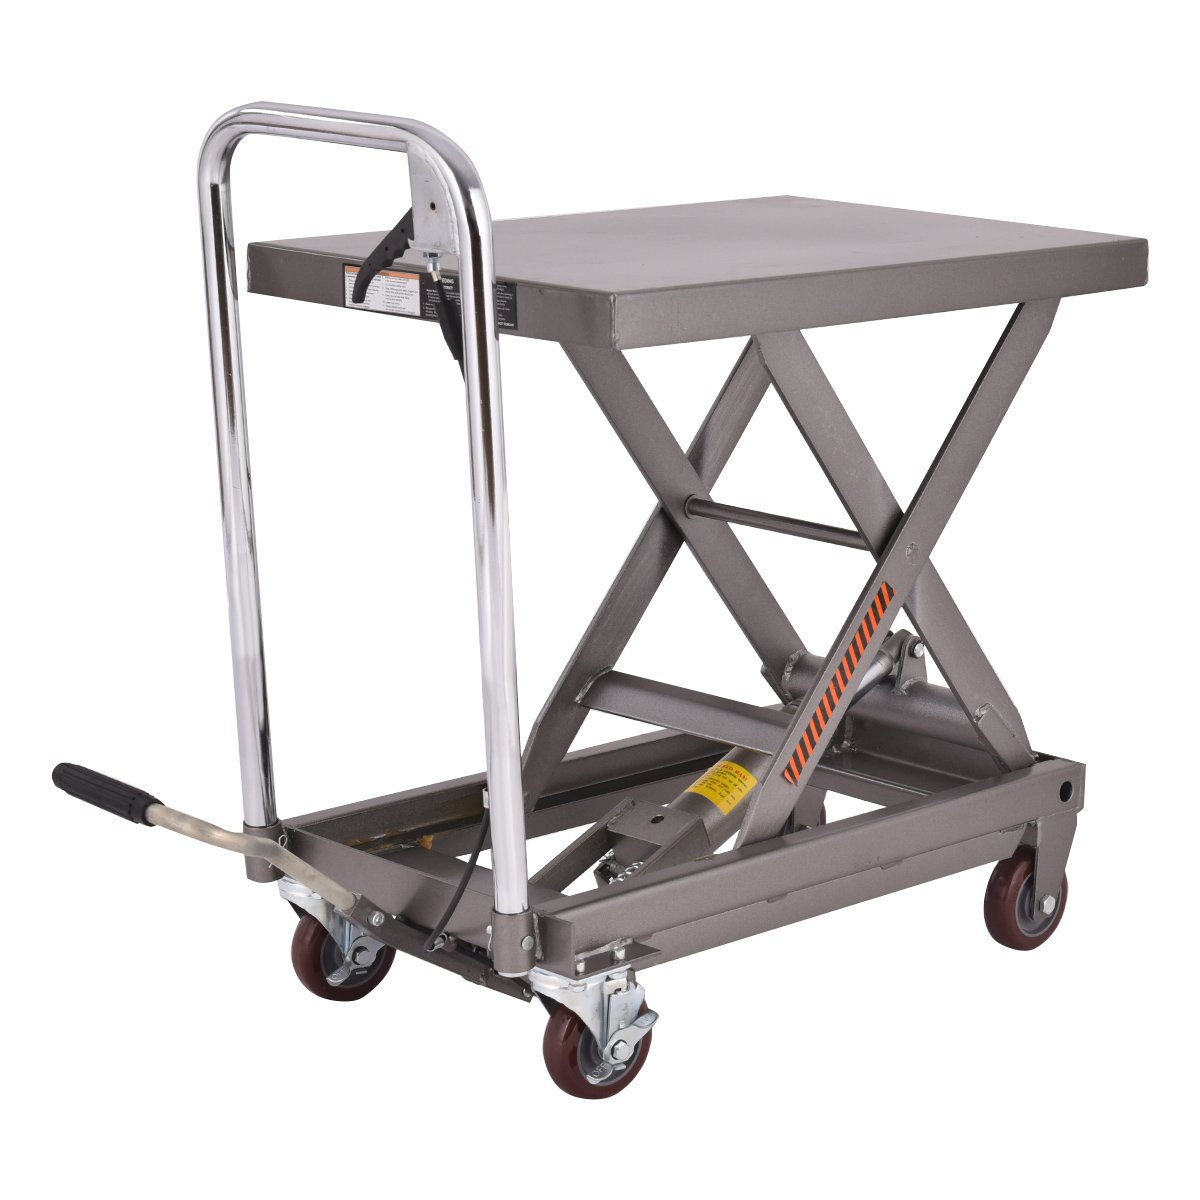 Goplus Hydraulic Scissor Lift Table Cart Dolly Scissor Jack Hoist Stand 500LB Capacity W/ Foot Pump